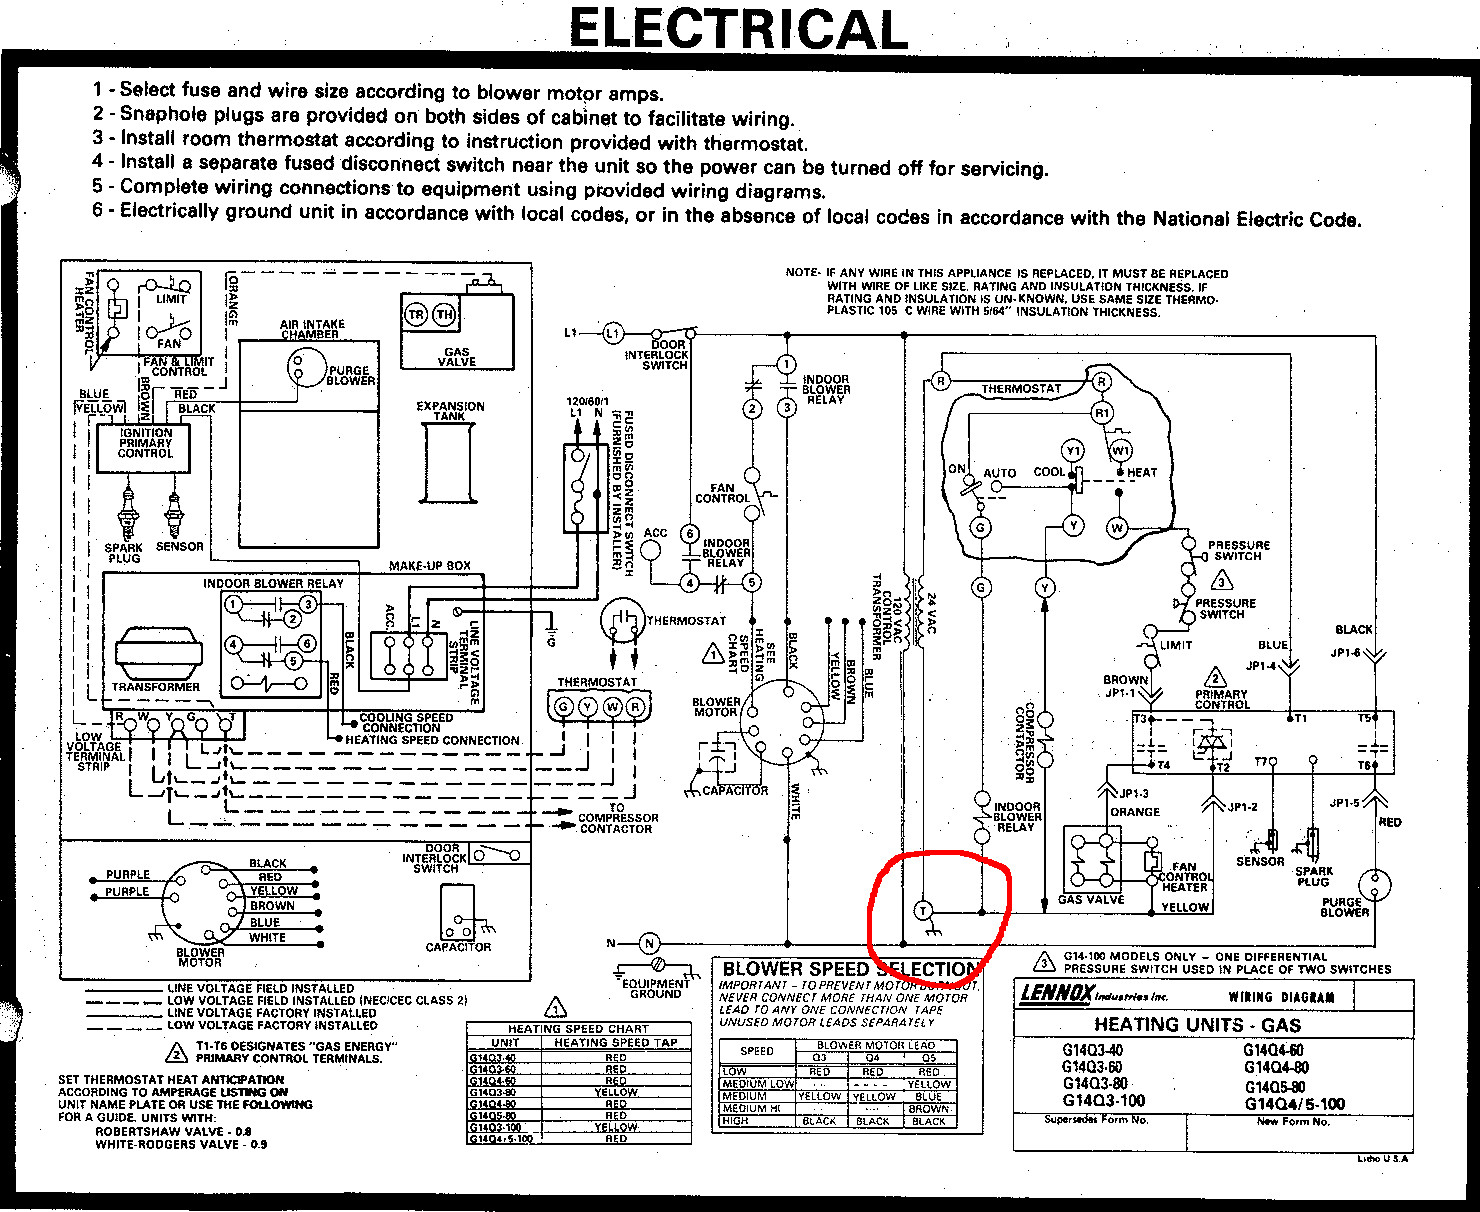 white rodgers 24a01g 3 wiring diagram Download-Lennox Furnace Thermostat Wiring Diagram Collection Wiring Diagram White rodgers 24a01g 3 wiring diagram 11-j